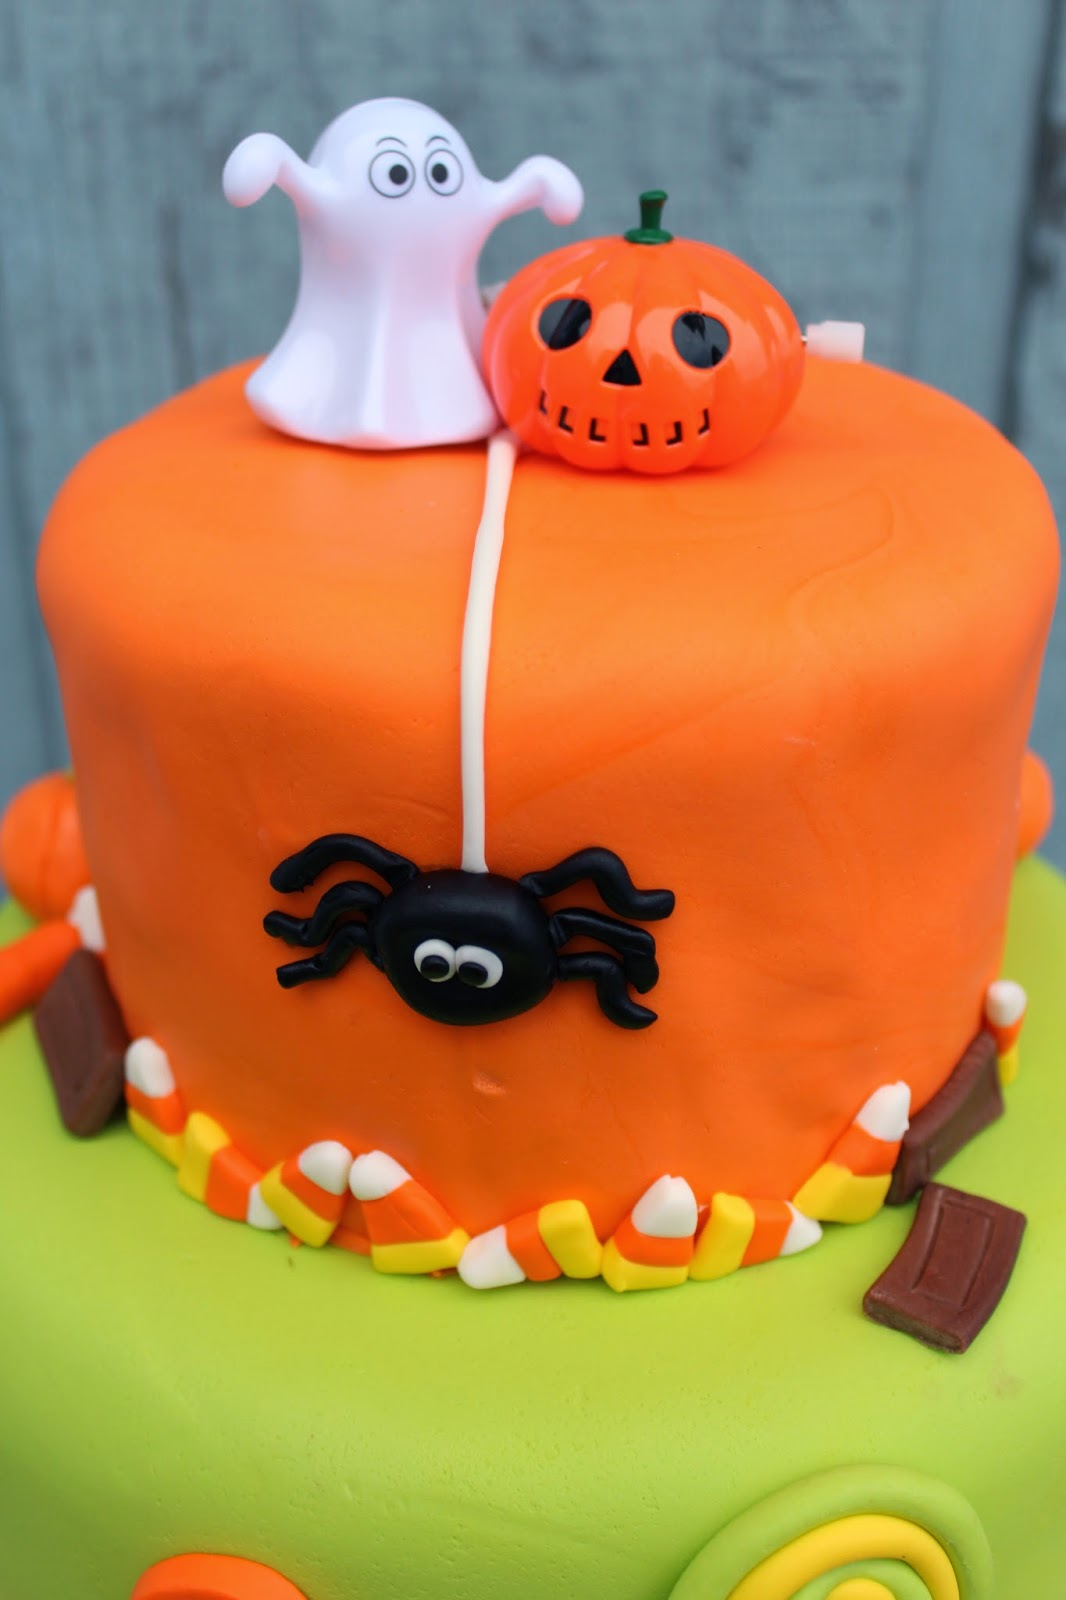 Cakes And Cookies Twins Halloween Birthday Cake